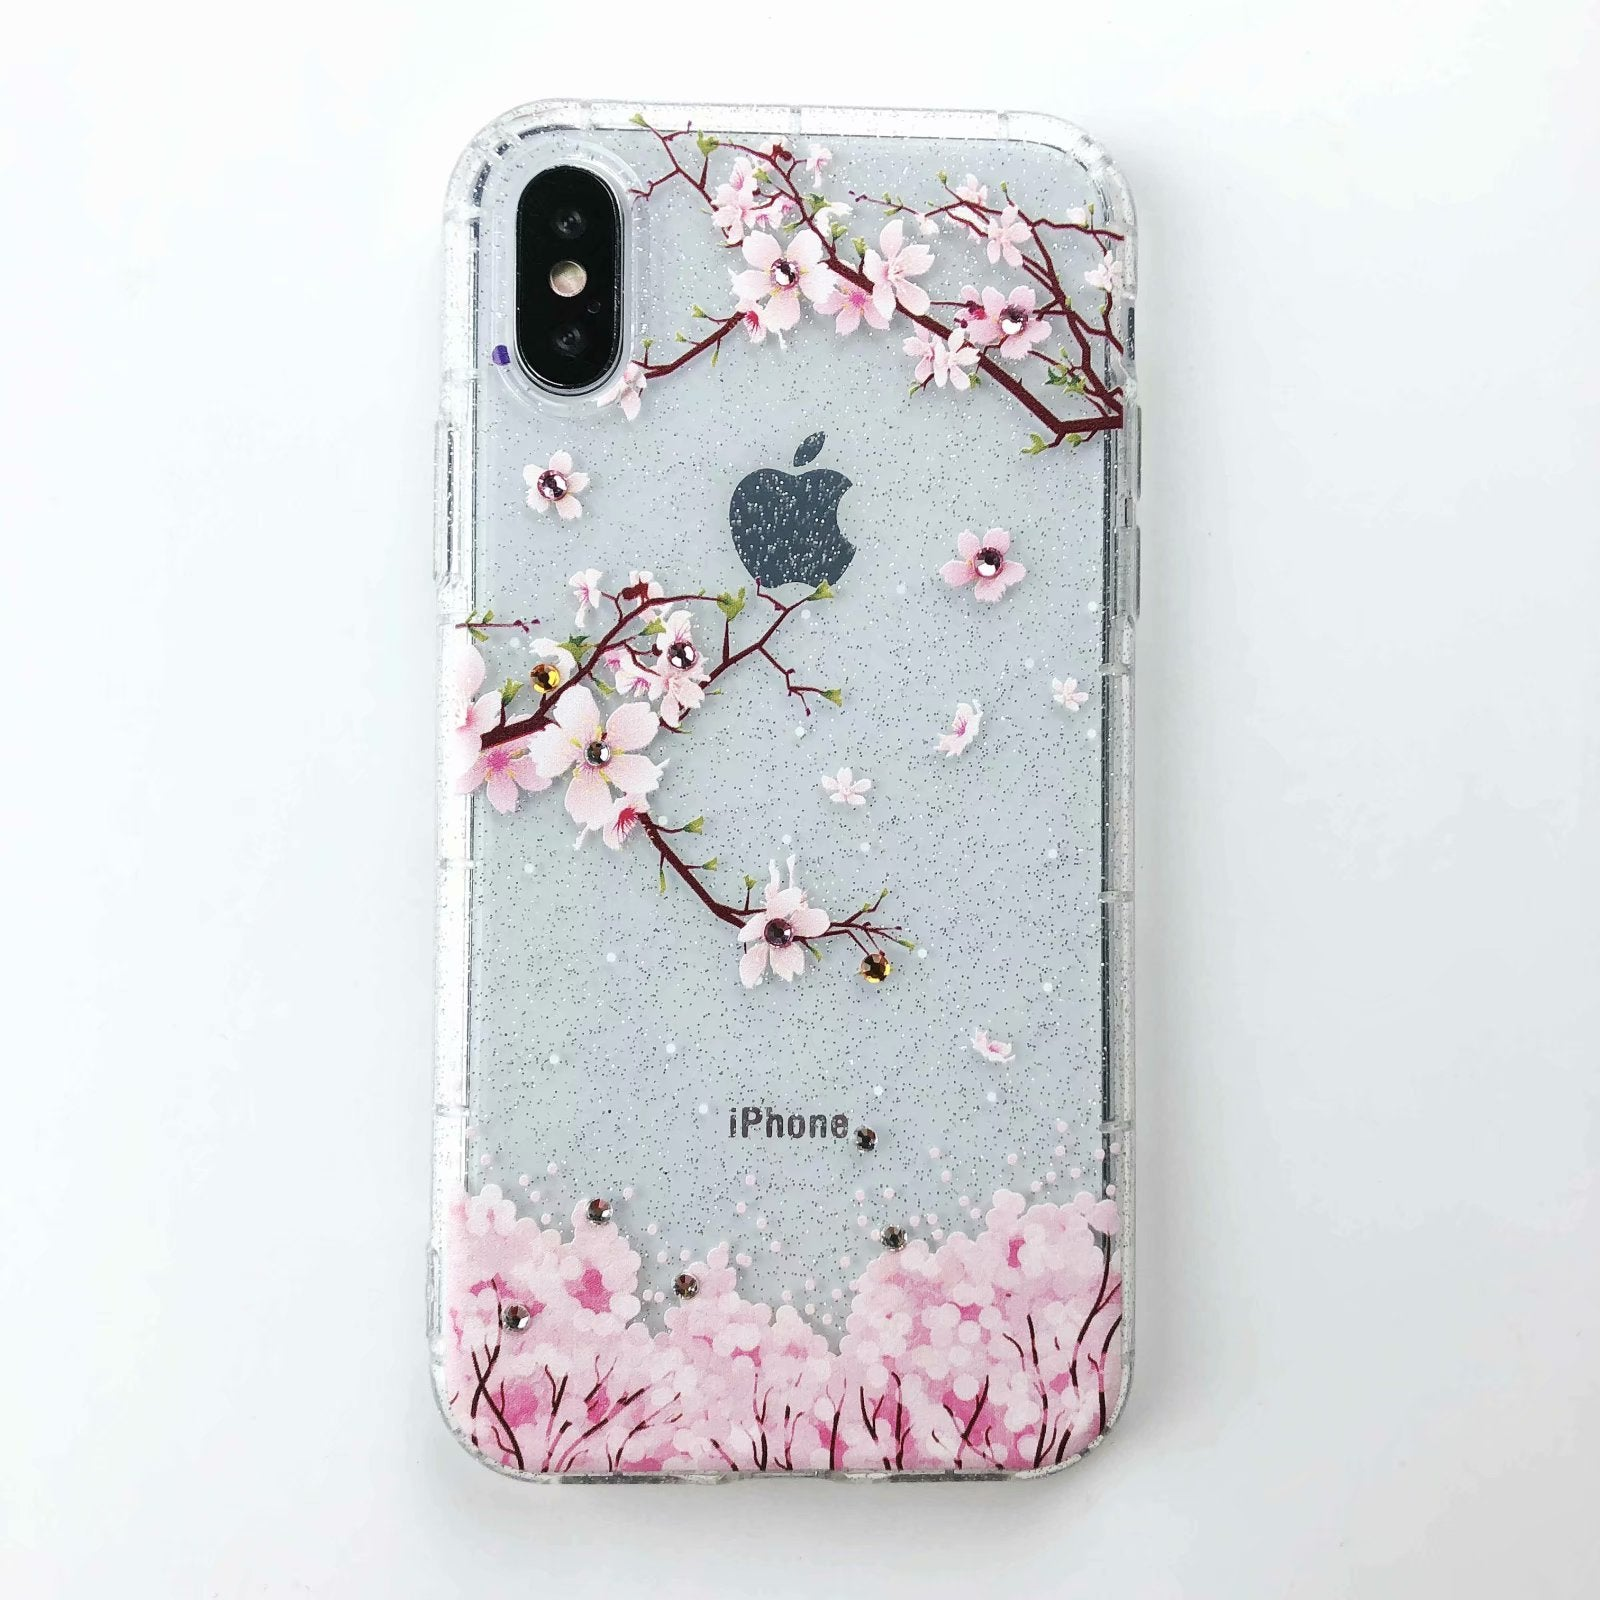 coque iphone 6 blue with blossoms